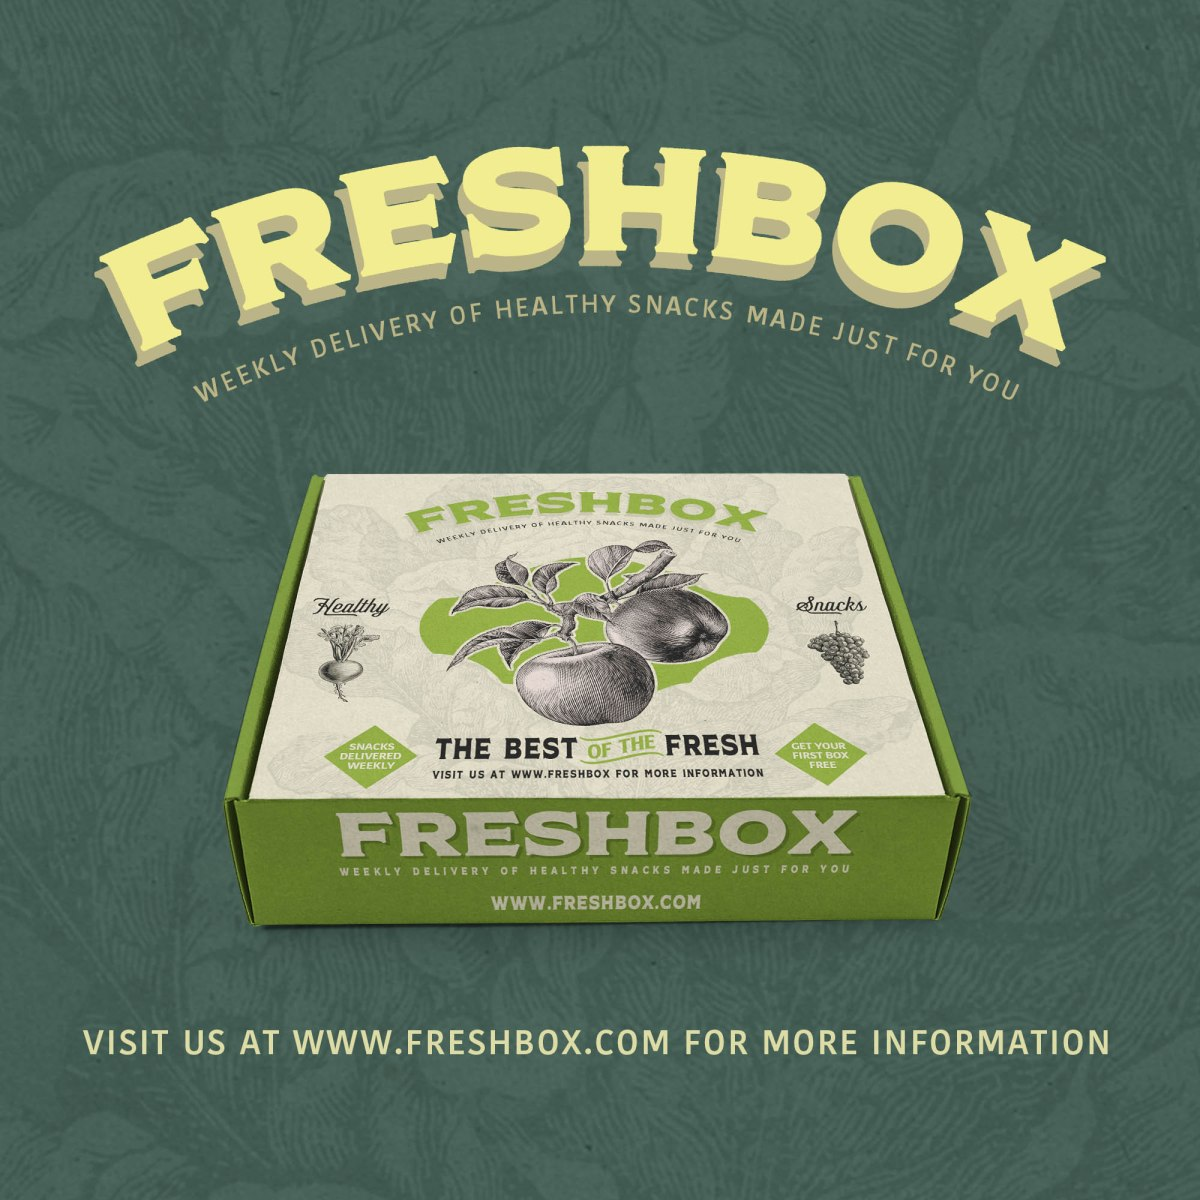 FreshBox Packaging.